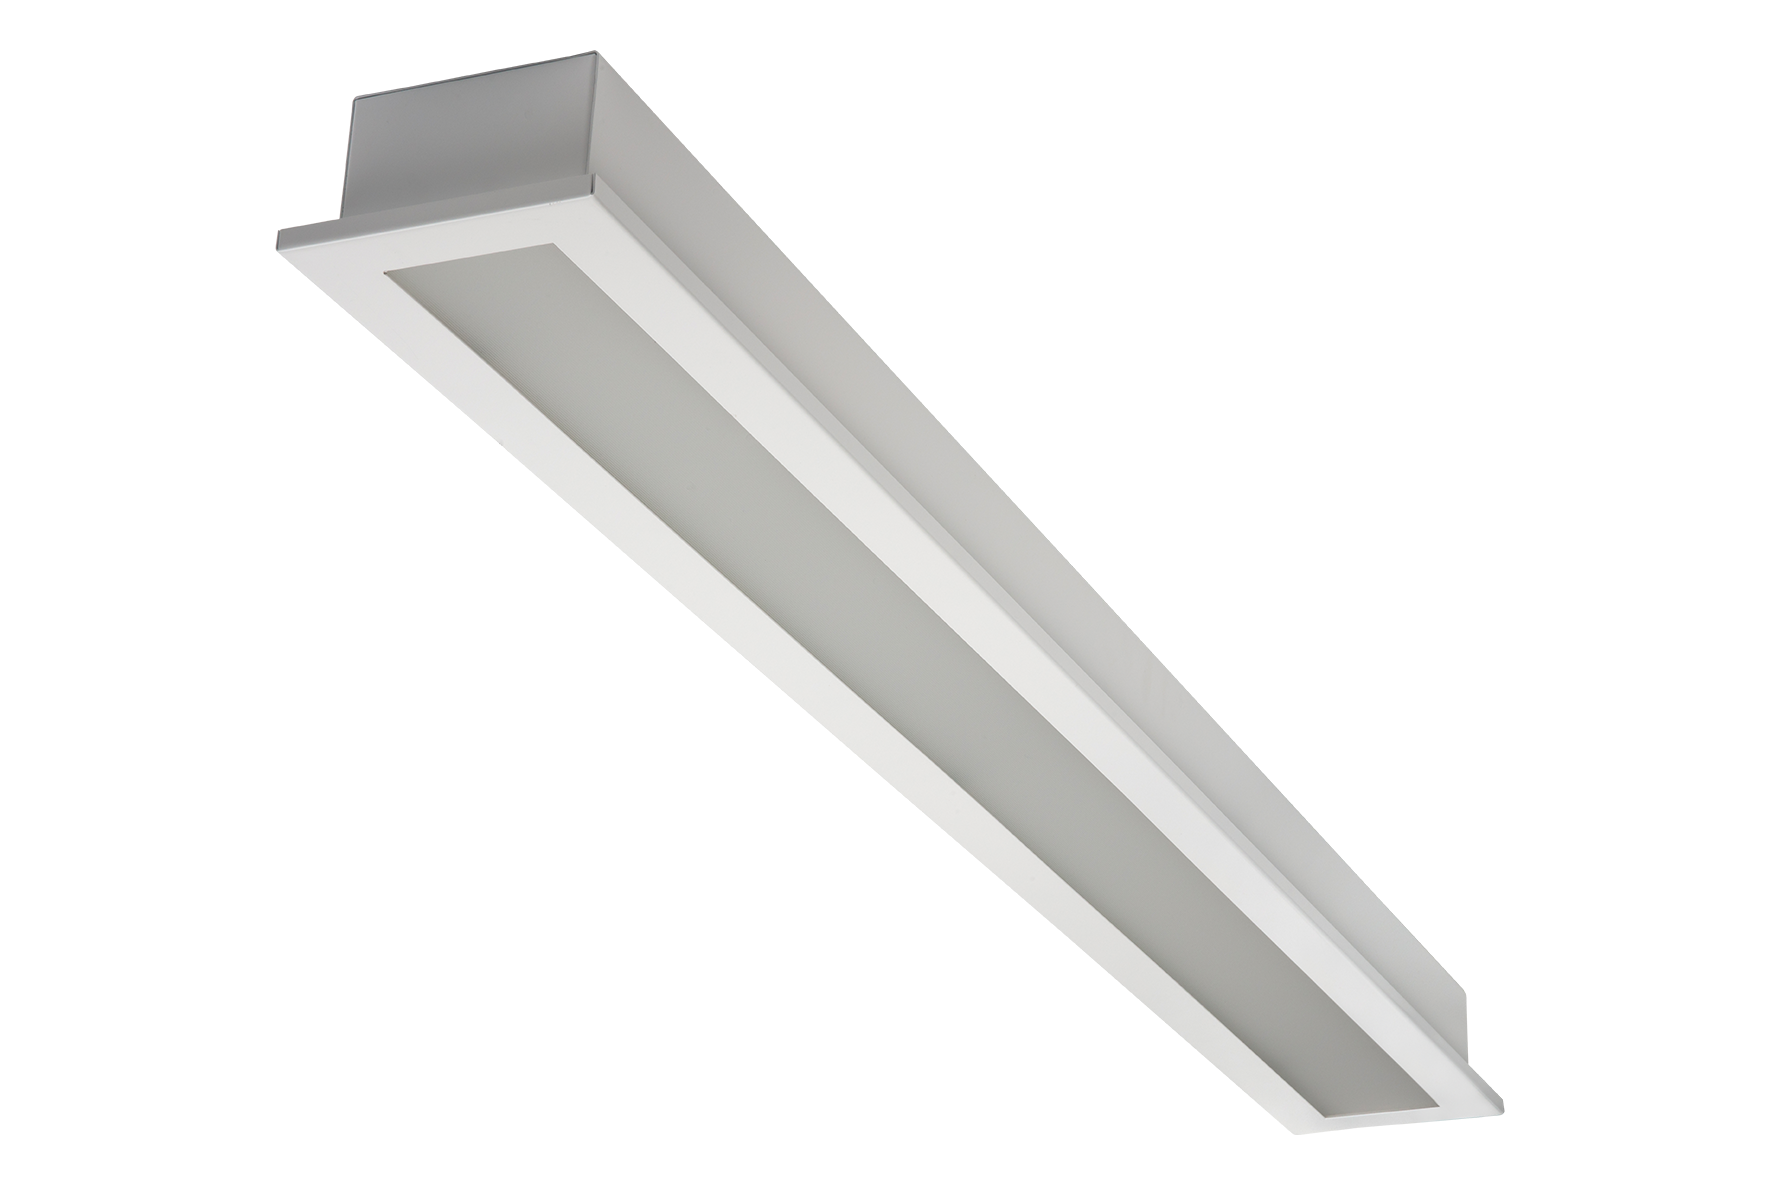 Linear 100 Range Plaster Recess, Tee-Bar, WedgeLed & more - LimeLite